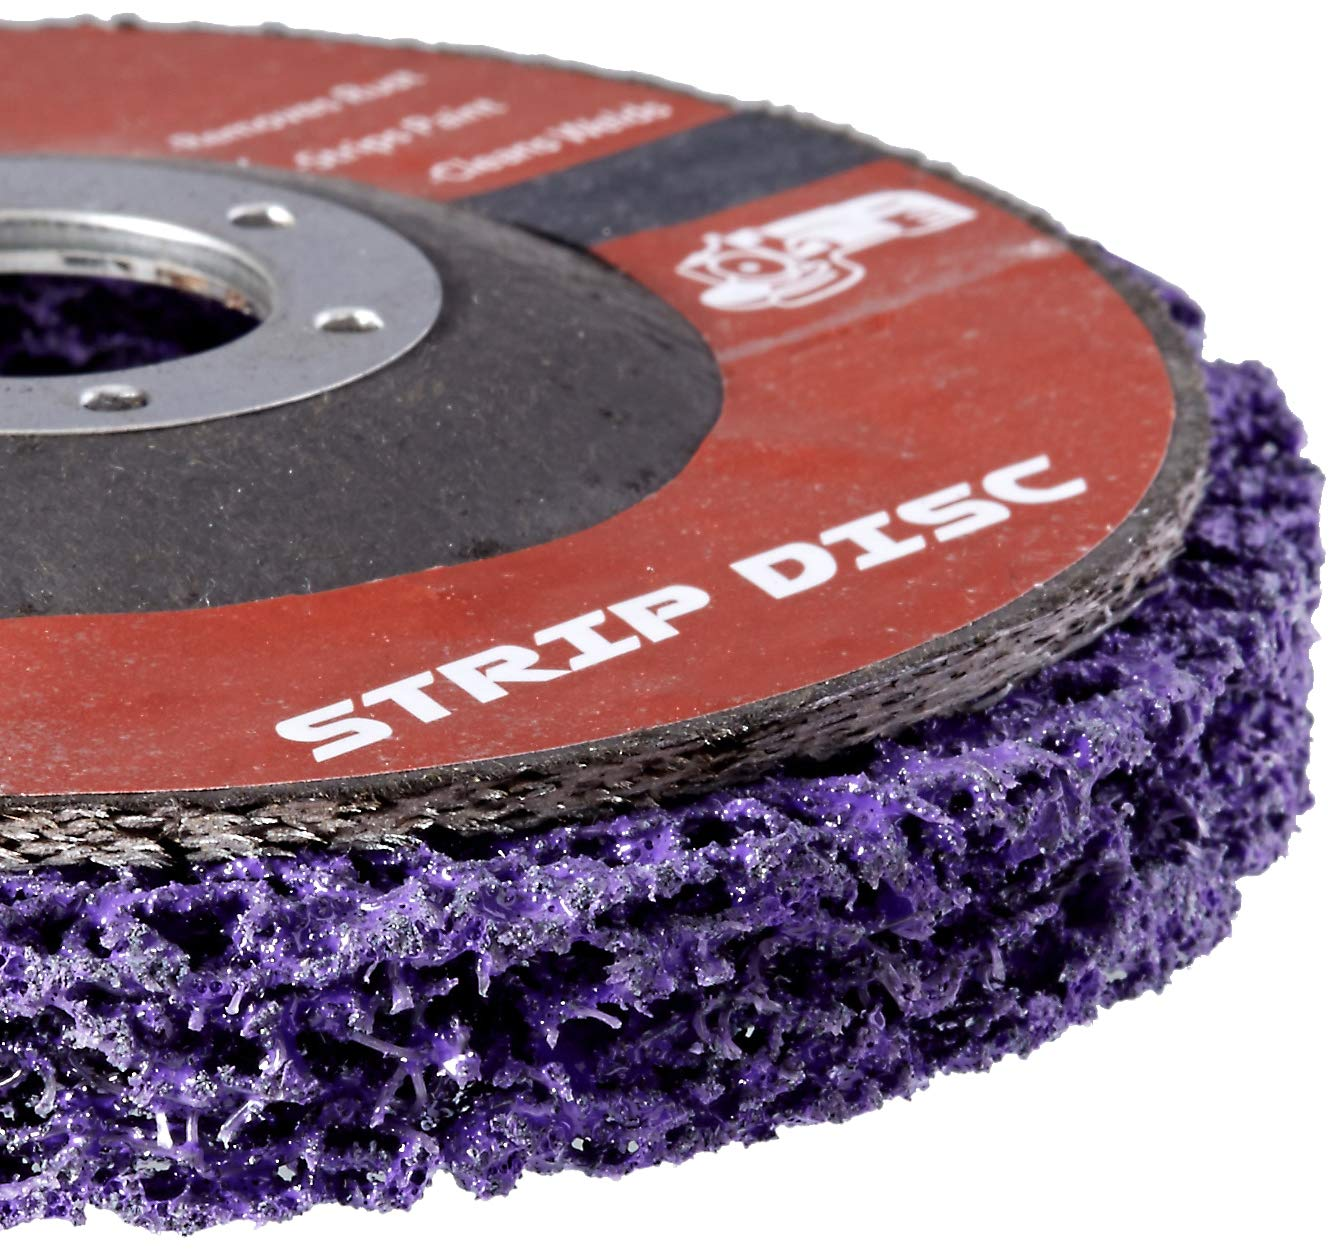 5 Pack 115mm 4 1//2 x 7//8 KENOSHA IRON Extended Life Easy Strip and Clean Disc for Angle Grinders